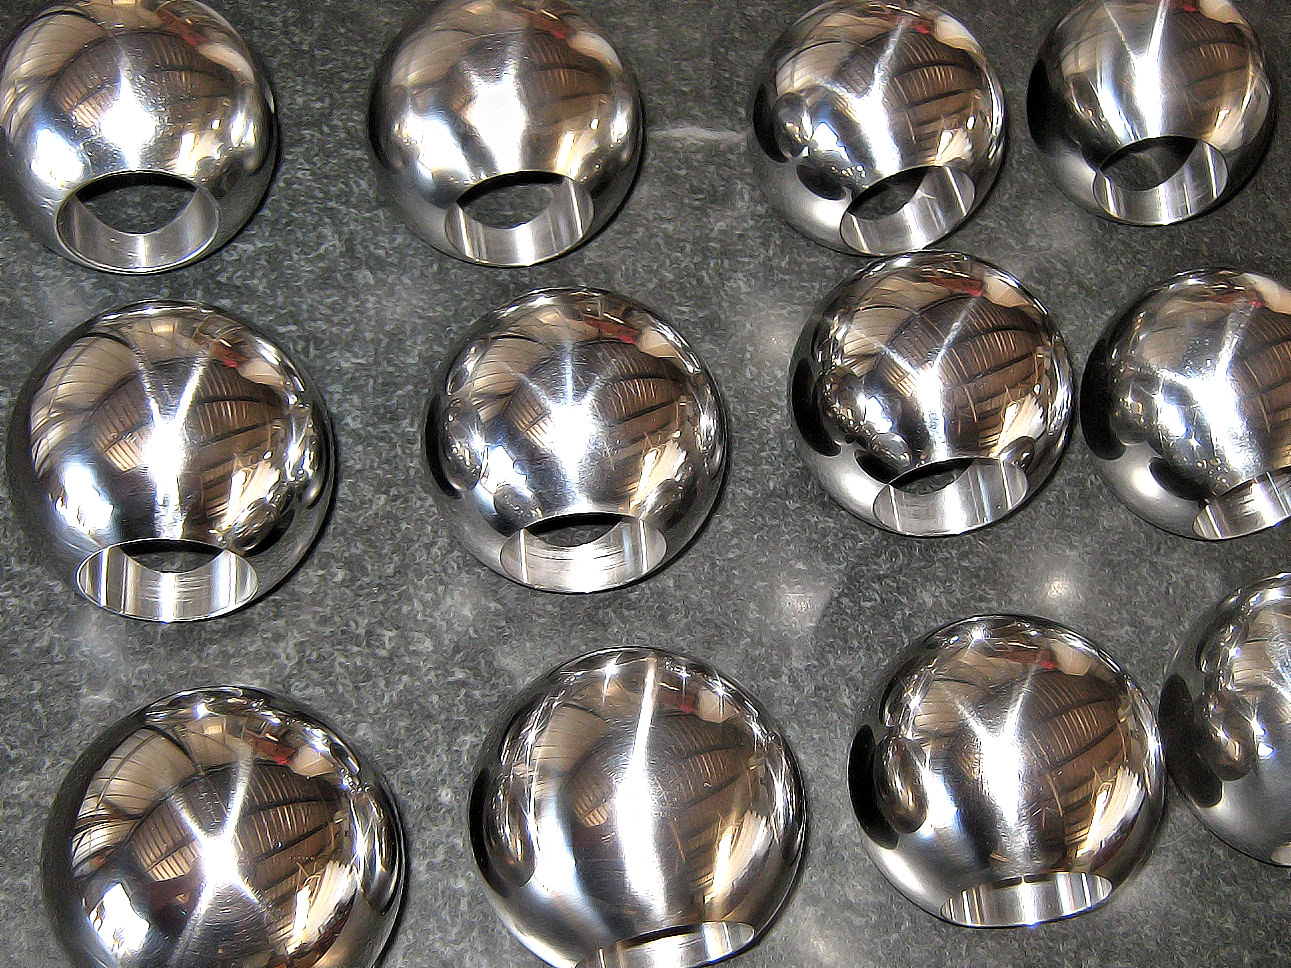 CNC stainless steel valves